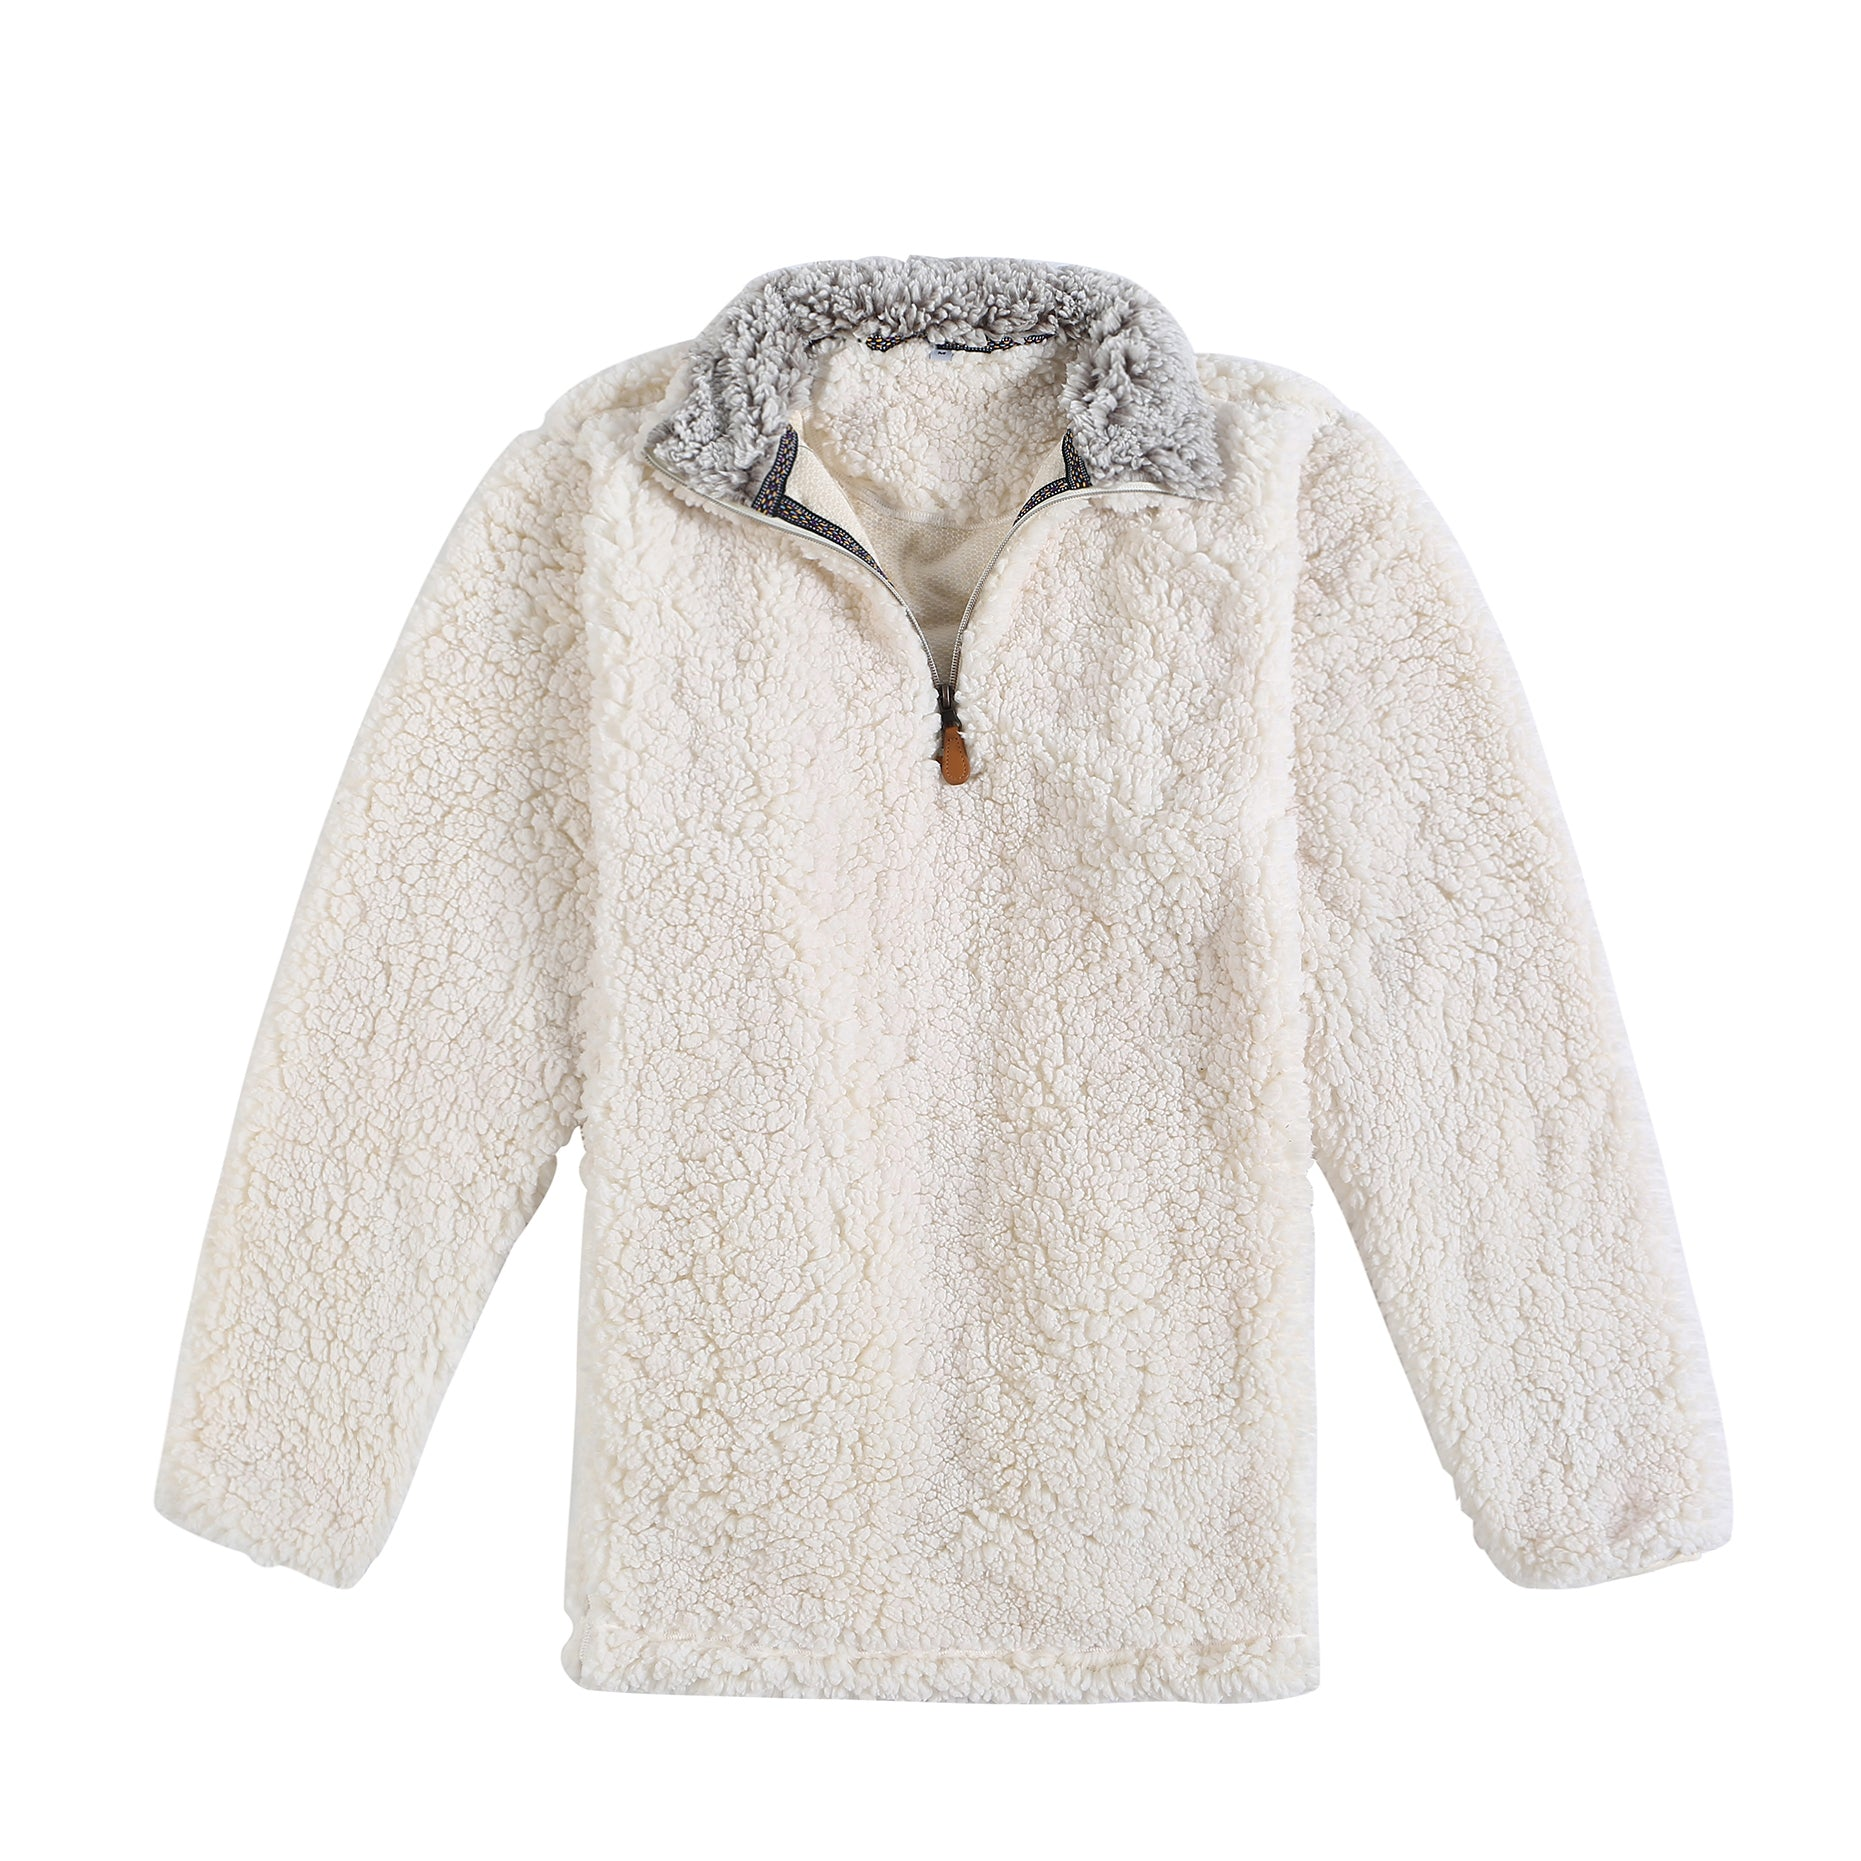 BLOWOUT: Katydid Wholesale Sherpa PULLOVER with Pockets